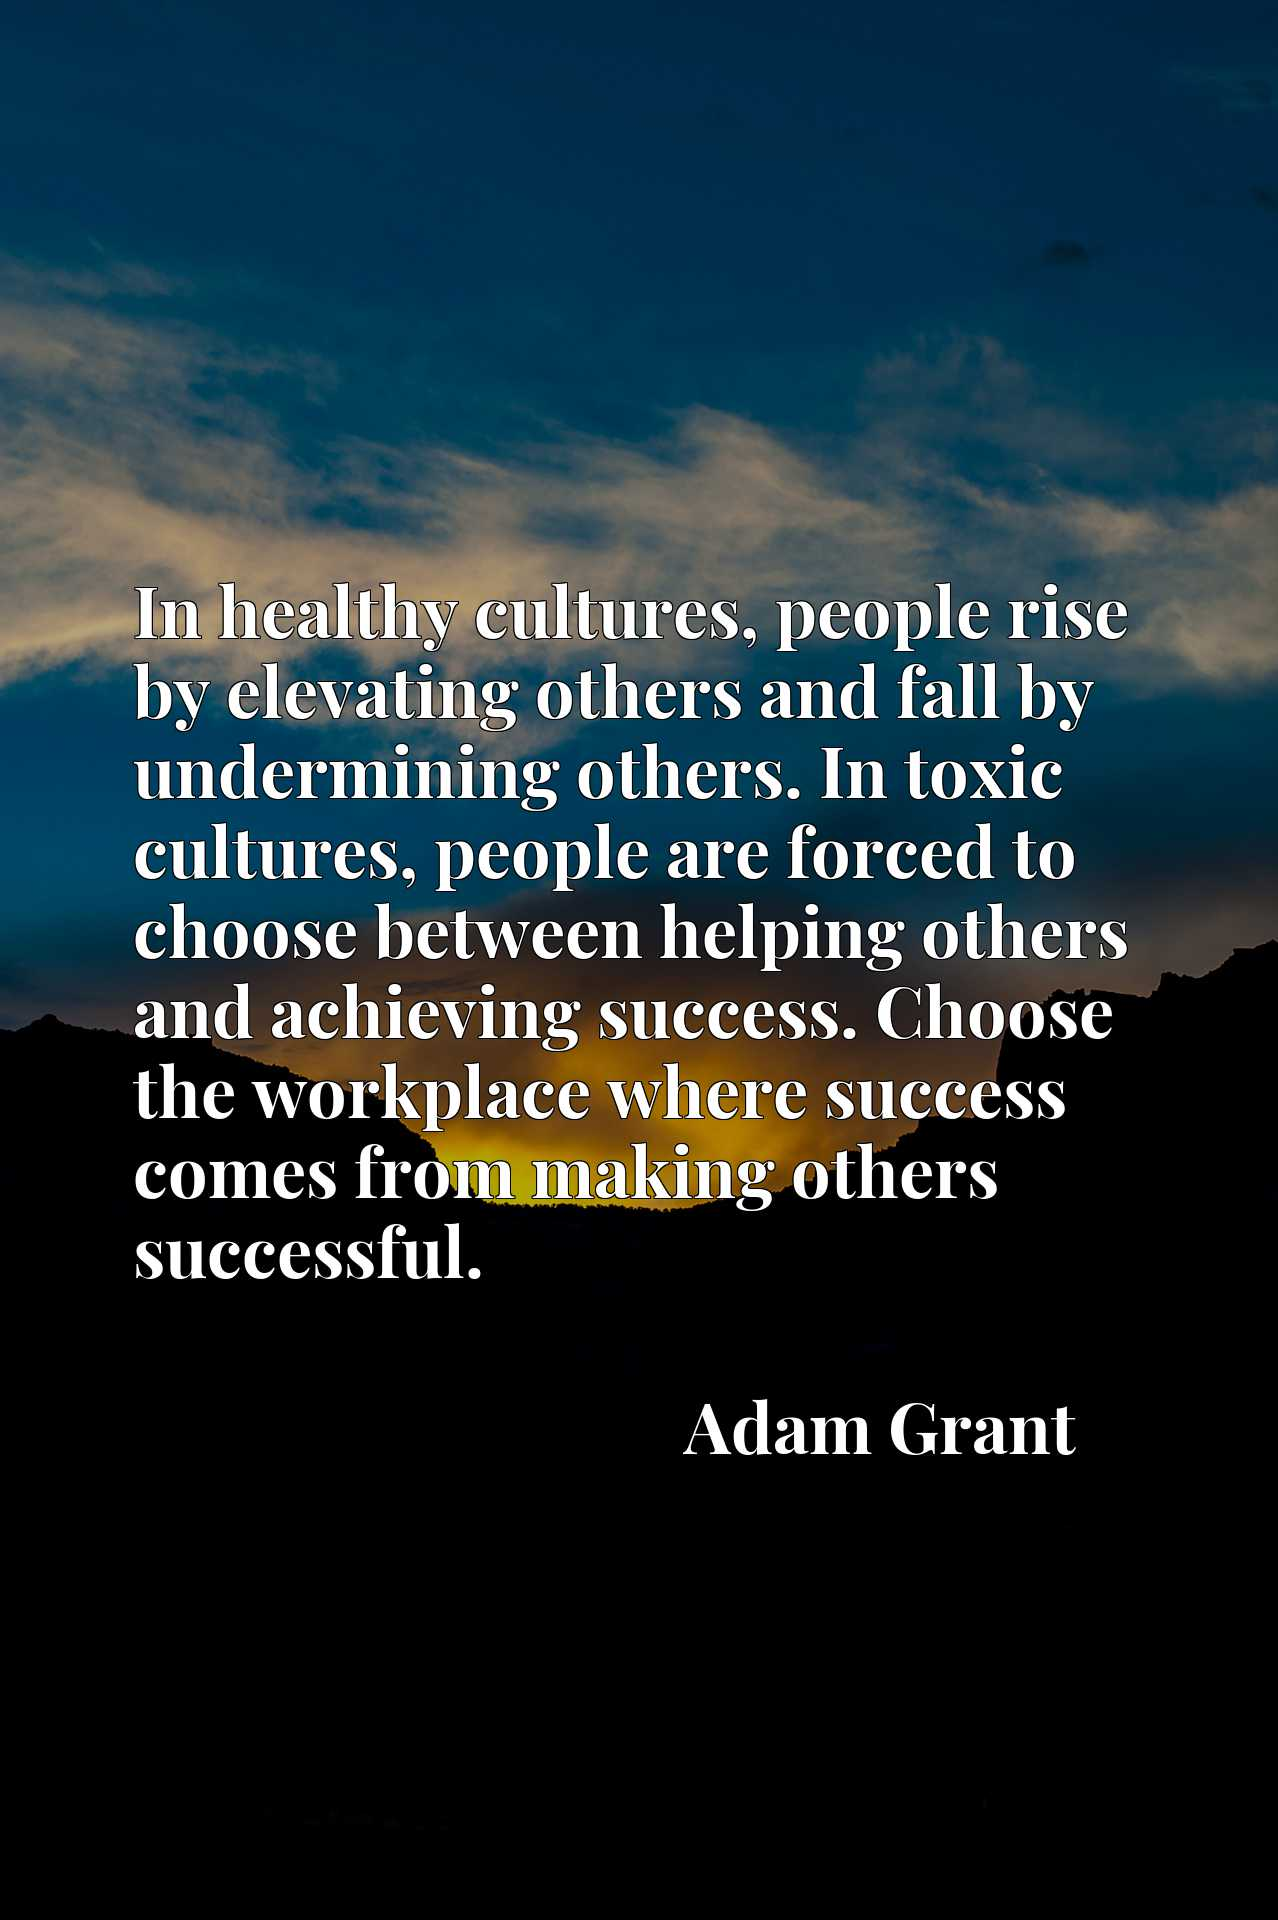 In healthy cultures, people rise by elevating others and fall by undermining others. In toxic cultures, people are forced to choose between helping others and achieving success. Choose the workplace where success comes from making others successful.